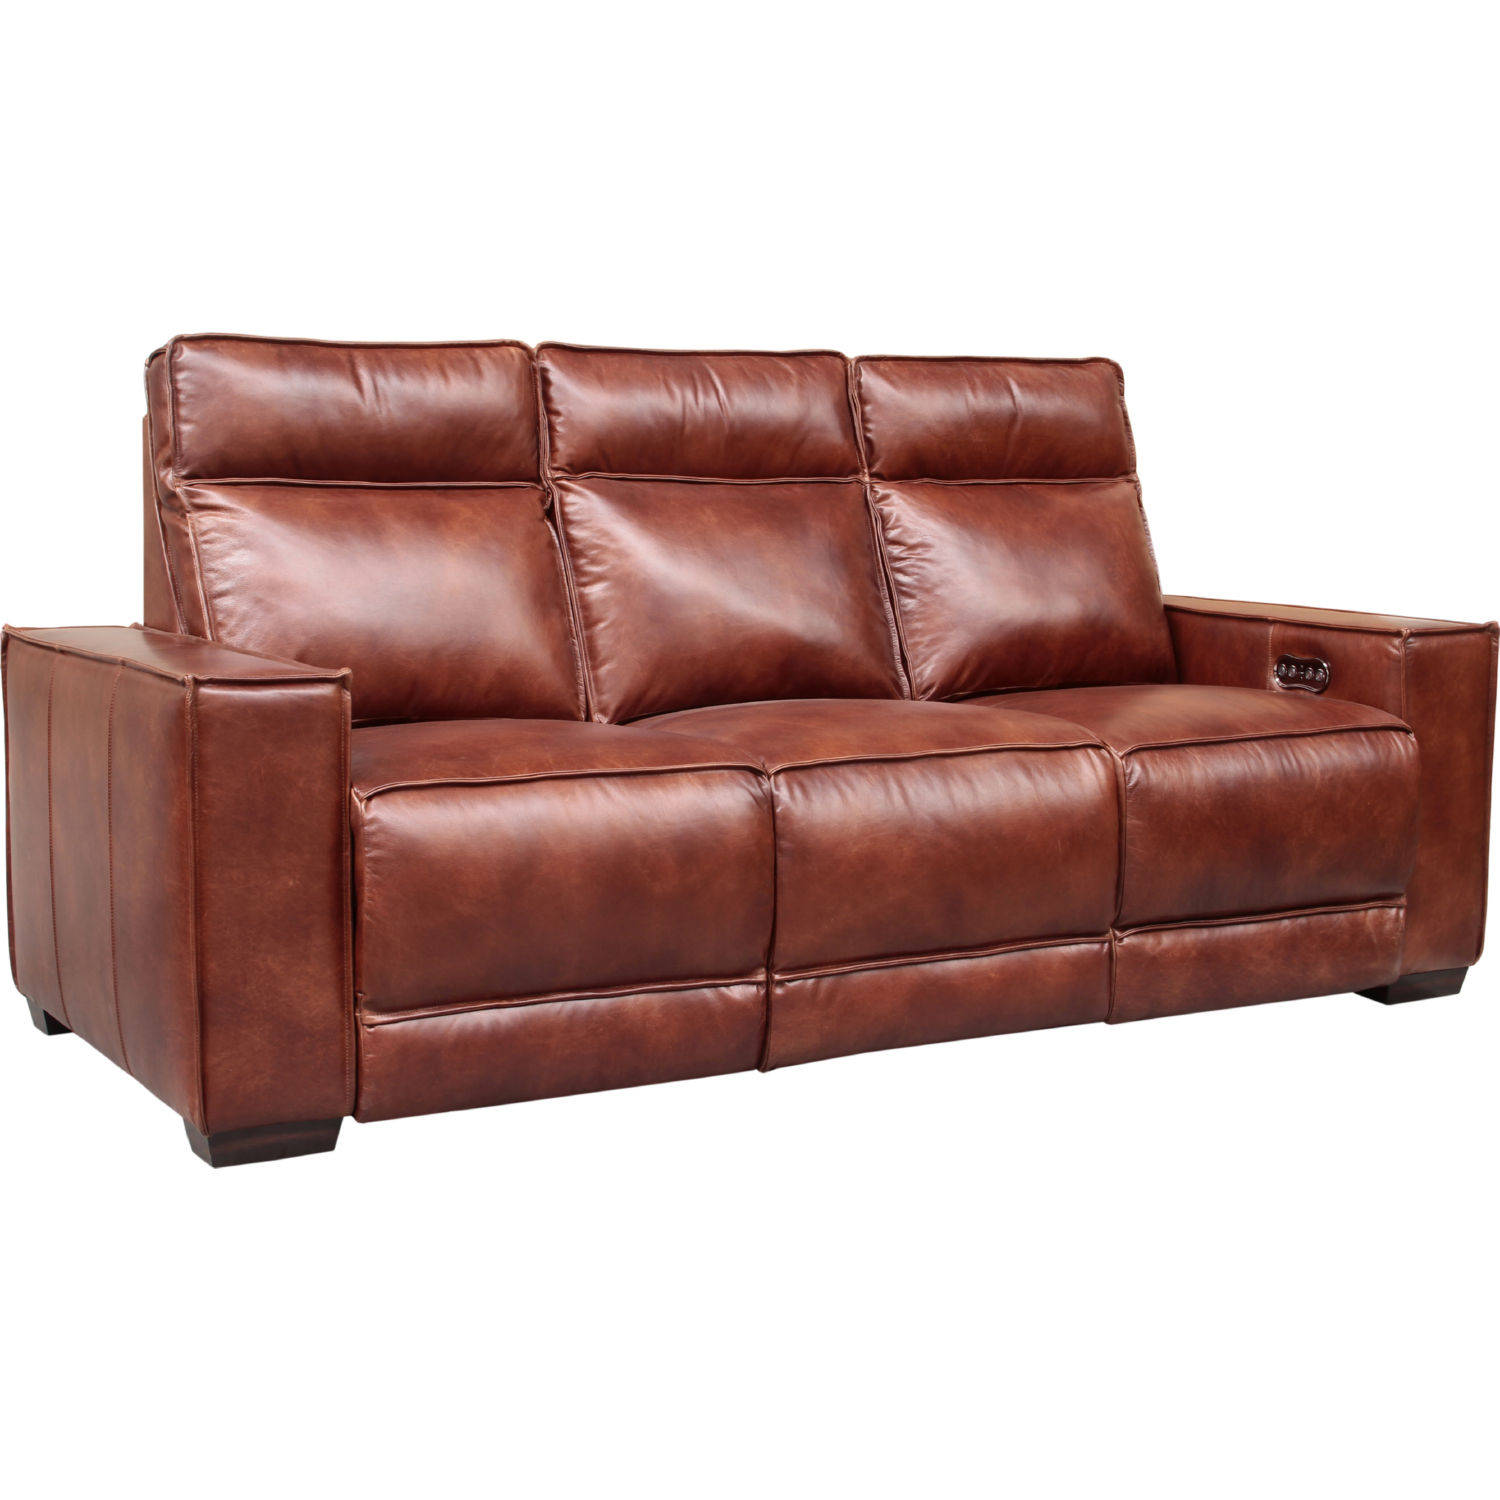 Barcalounger Montrose Sherwood Head Rests Reclining Sofa Click To Enlarge